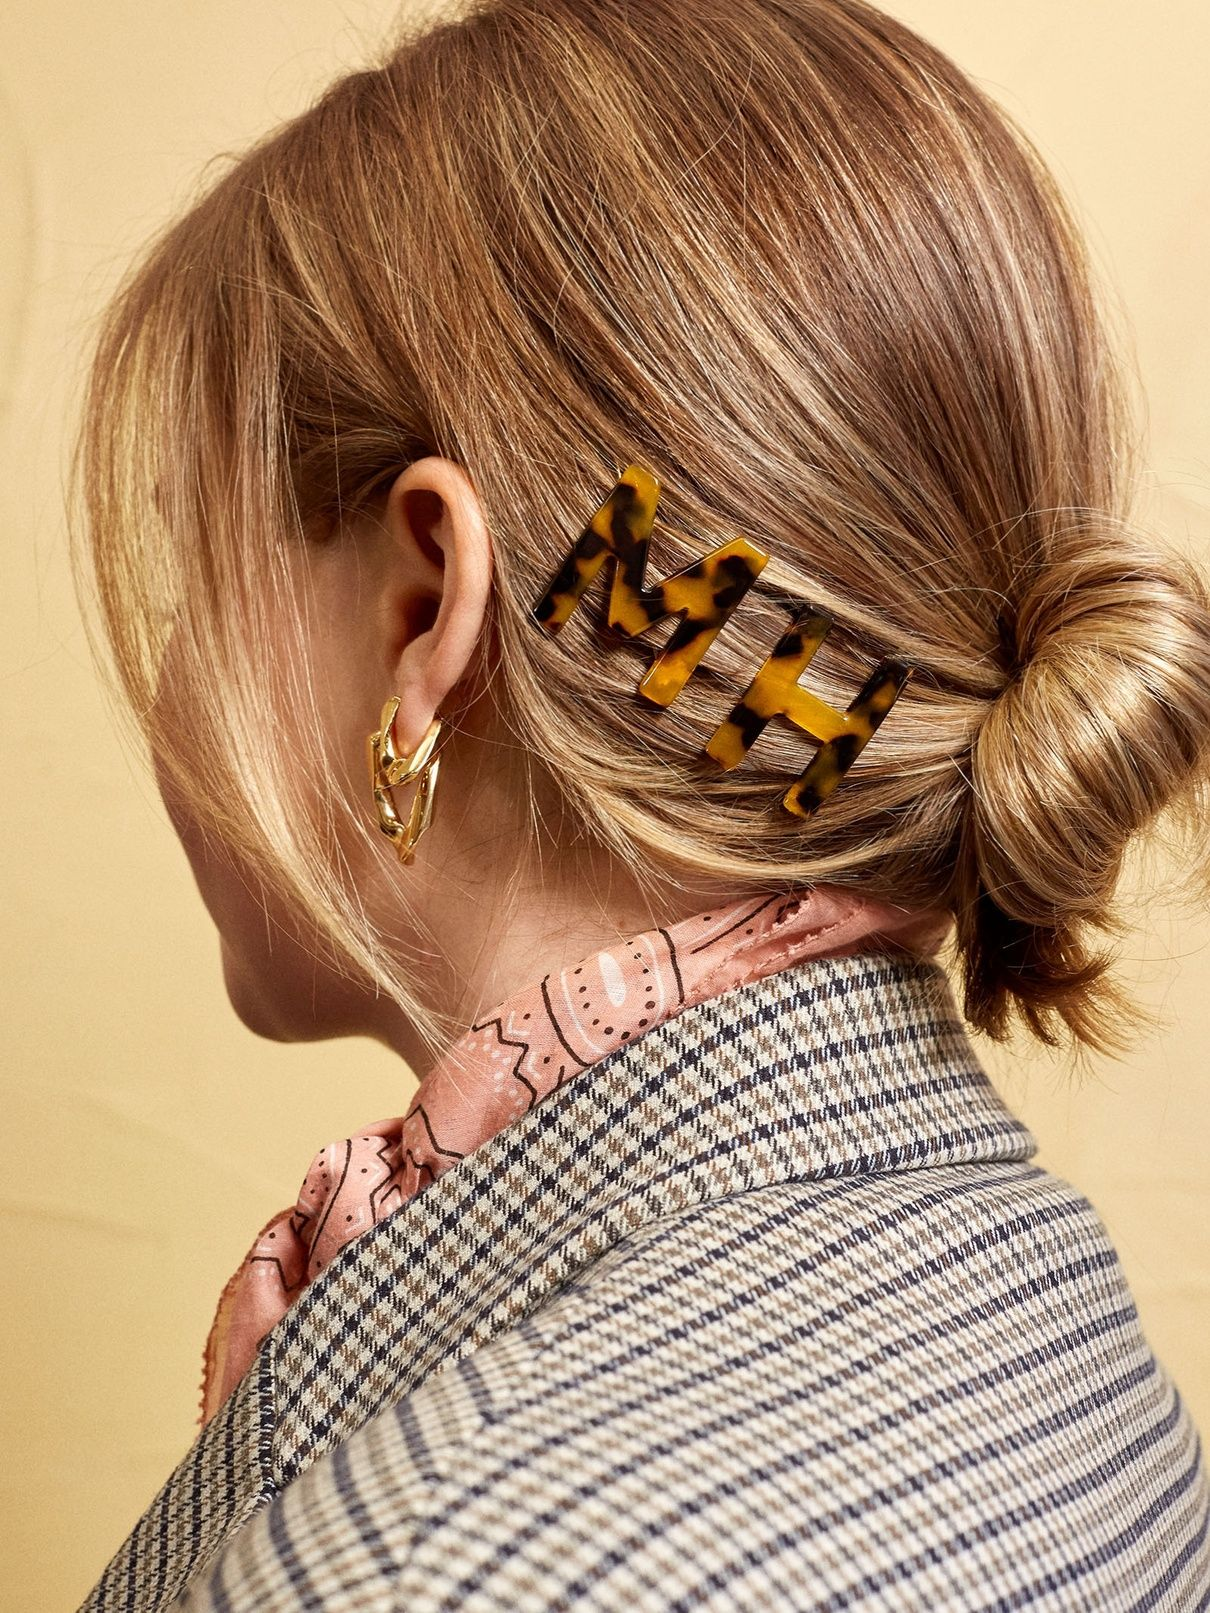 24 Best Hair Clips Cute Trendy Barrettes And Hair Accessories